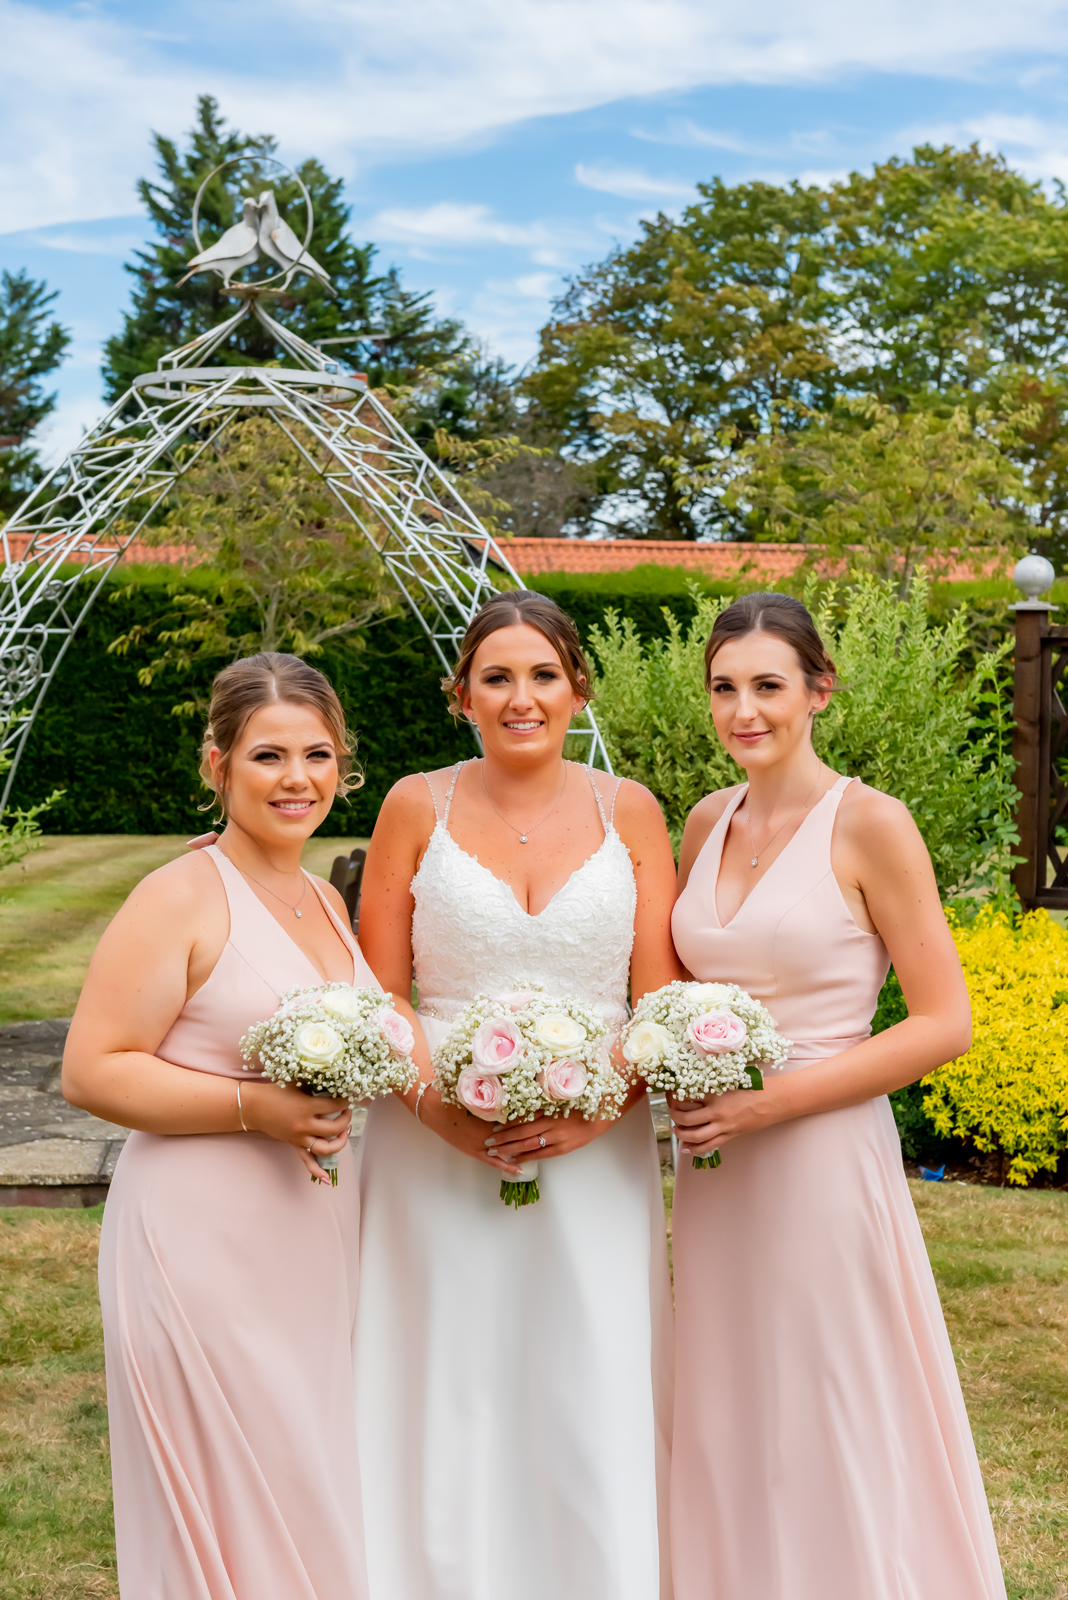 The bride and maids of honour photography